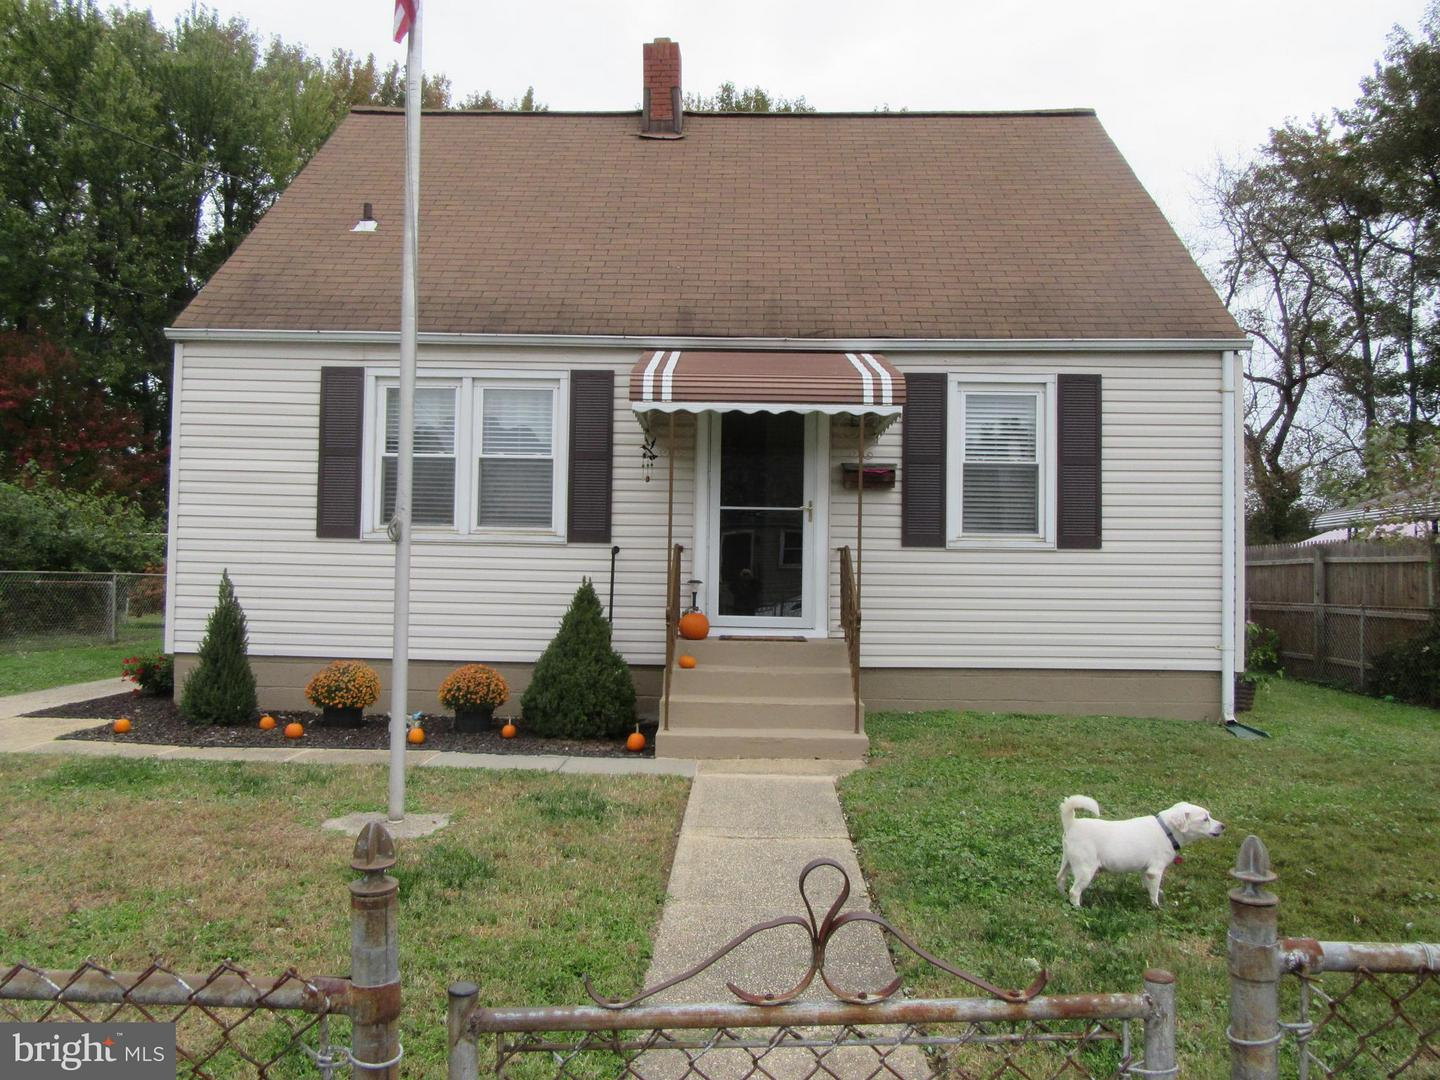 Other Residential for Sale at 4110 Eder Rd Dundalk, Maryland 21222 United States